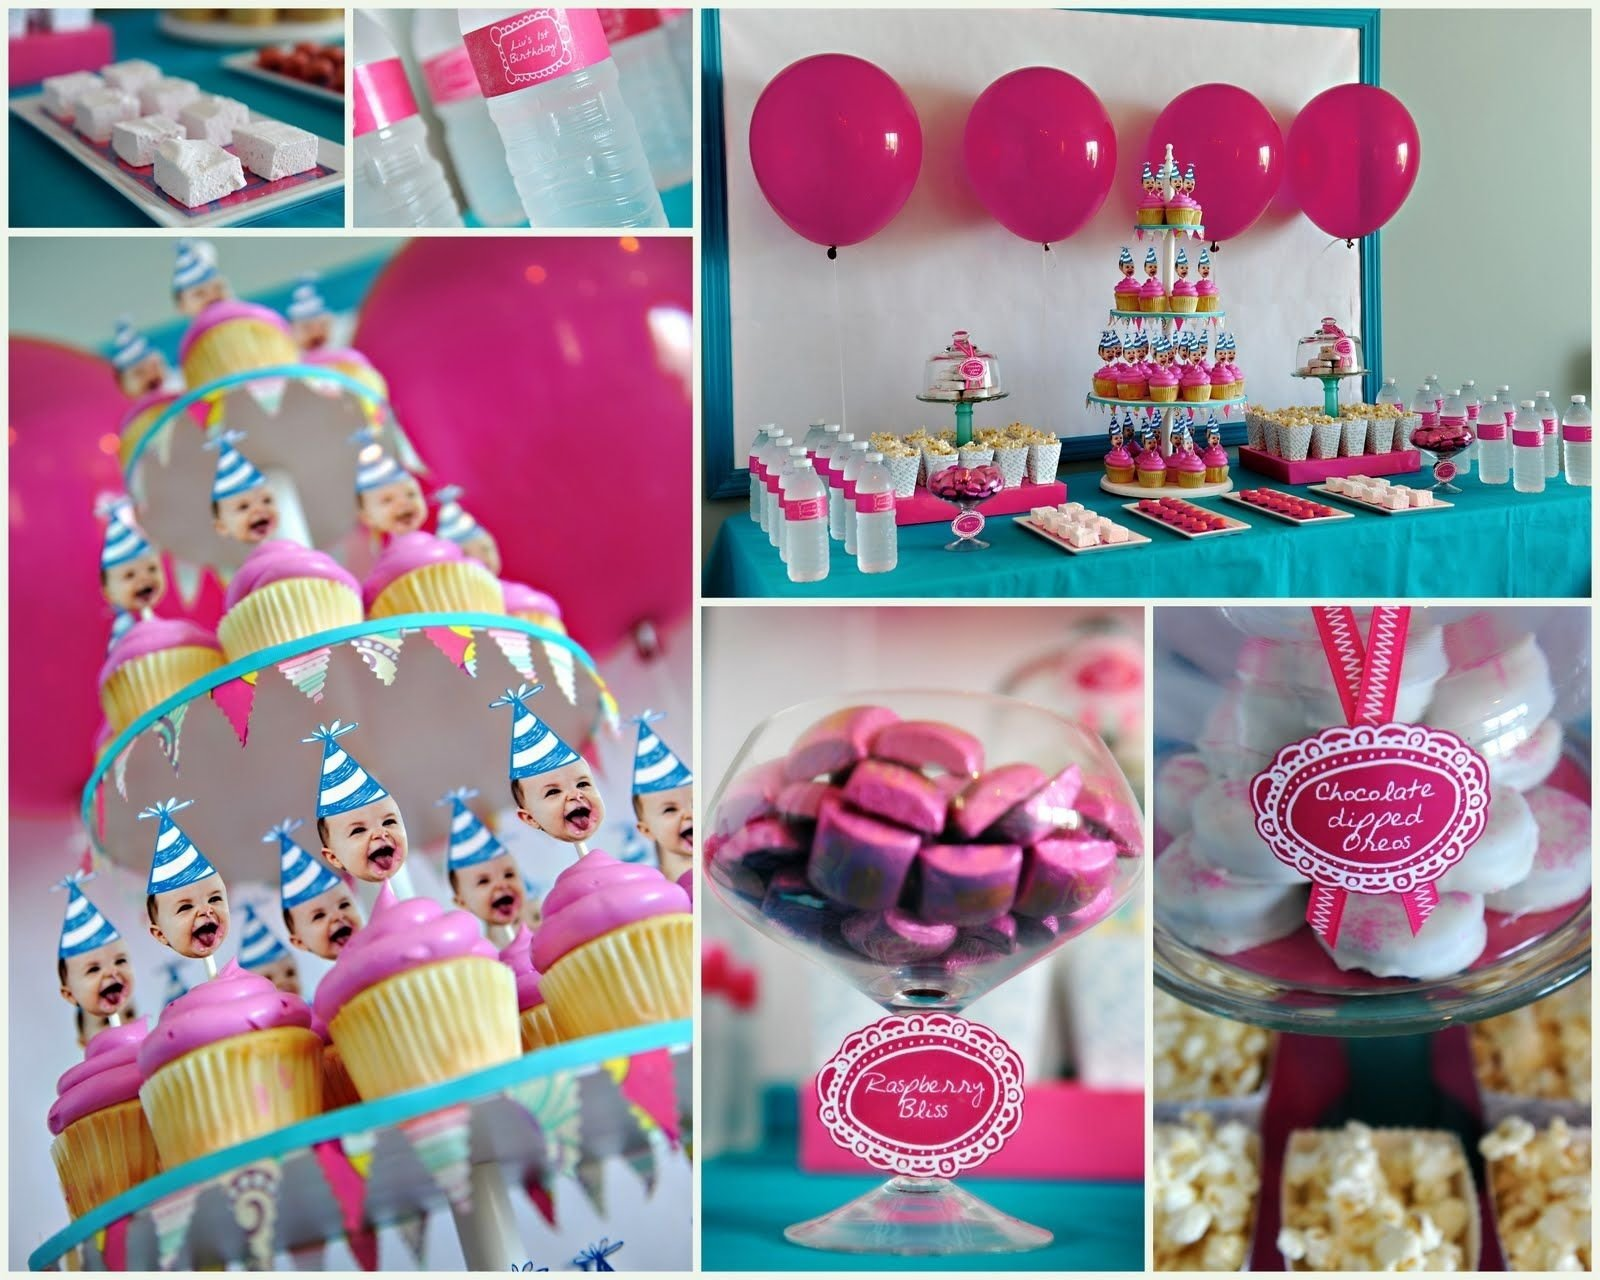 30 first birthday cake and party ideas [easy] | cake party, birthday